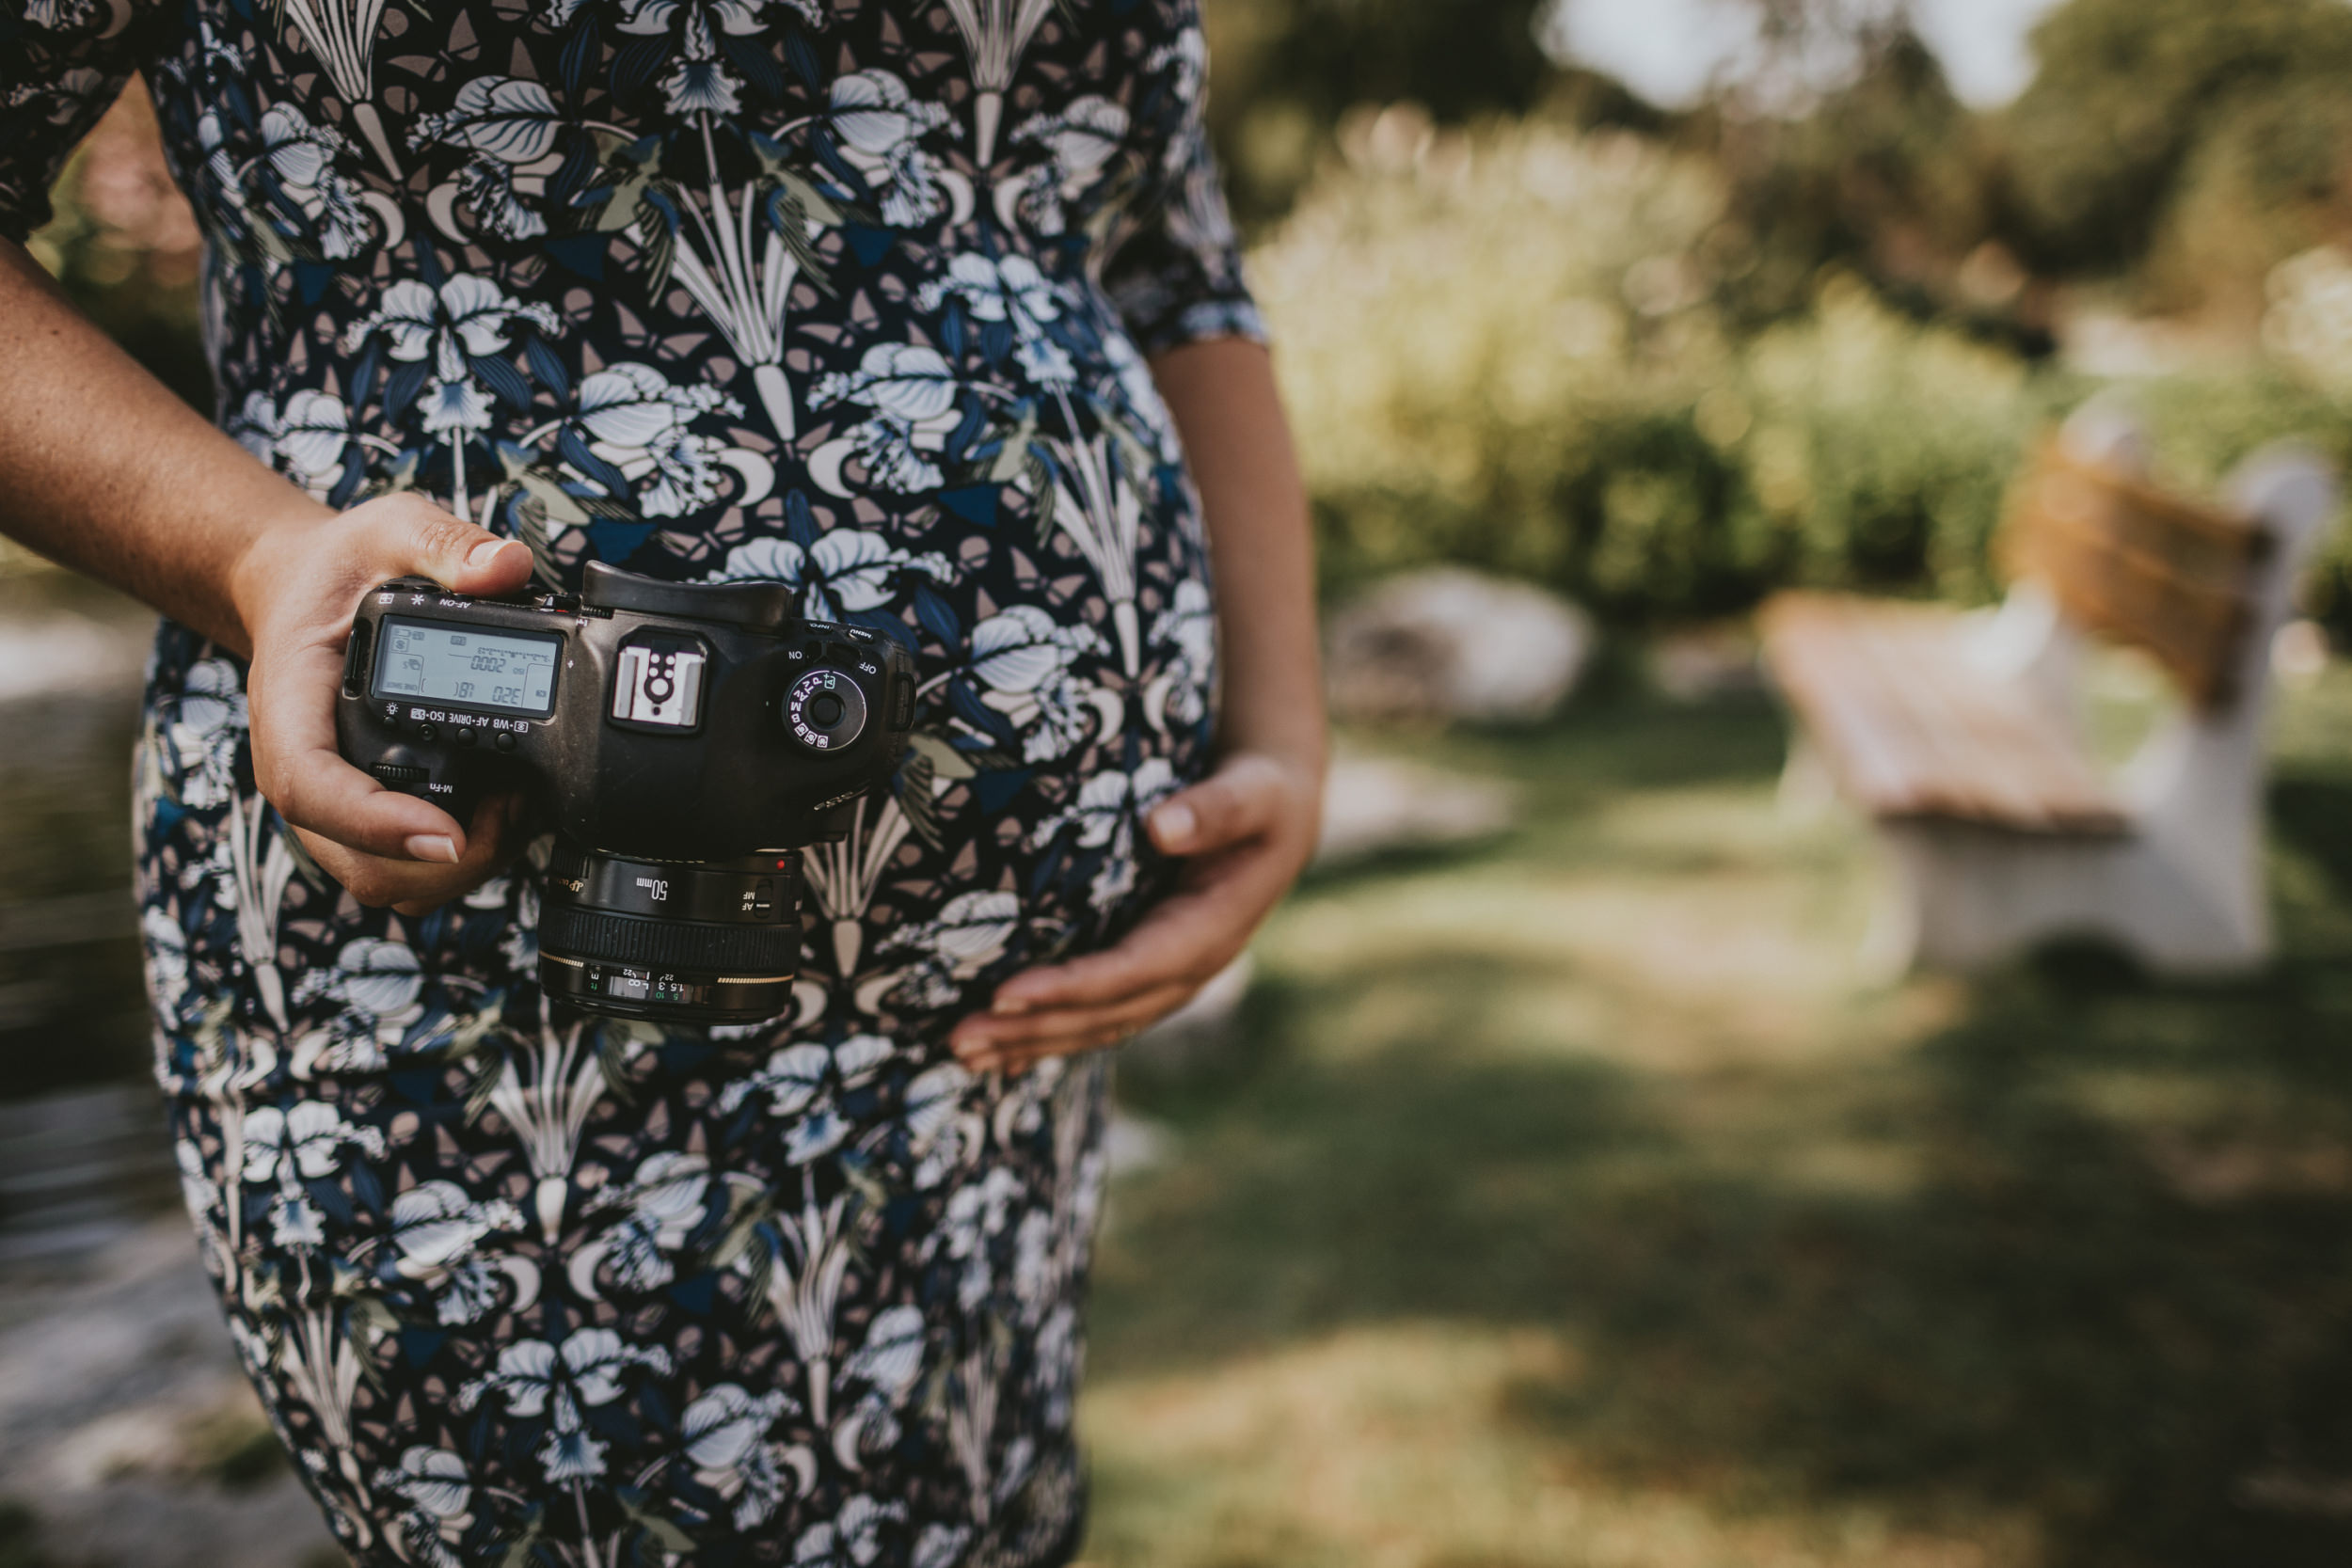 pregnant wedding photographer 8 - Shooting Weddings in the Third Trimester